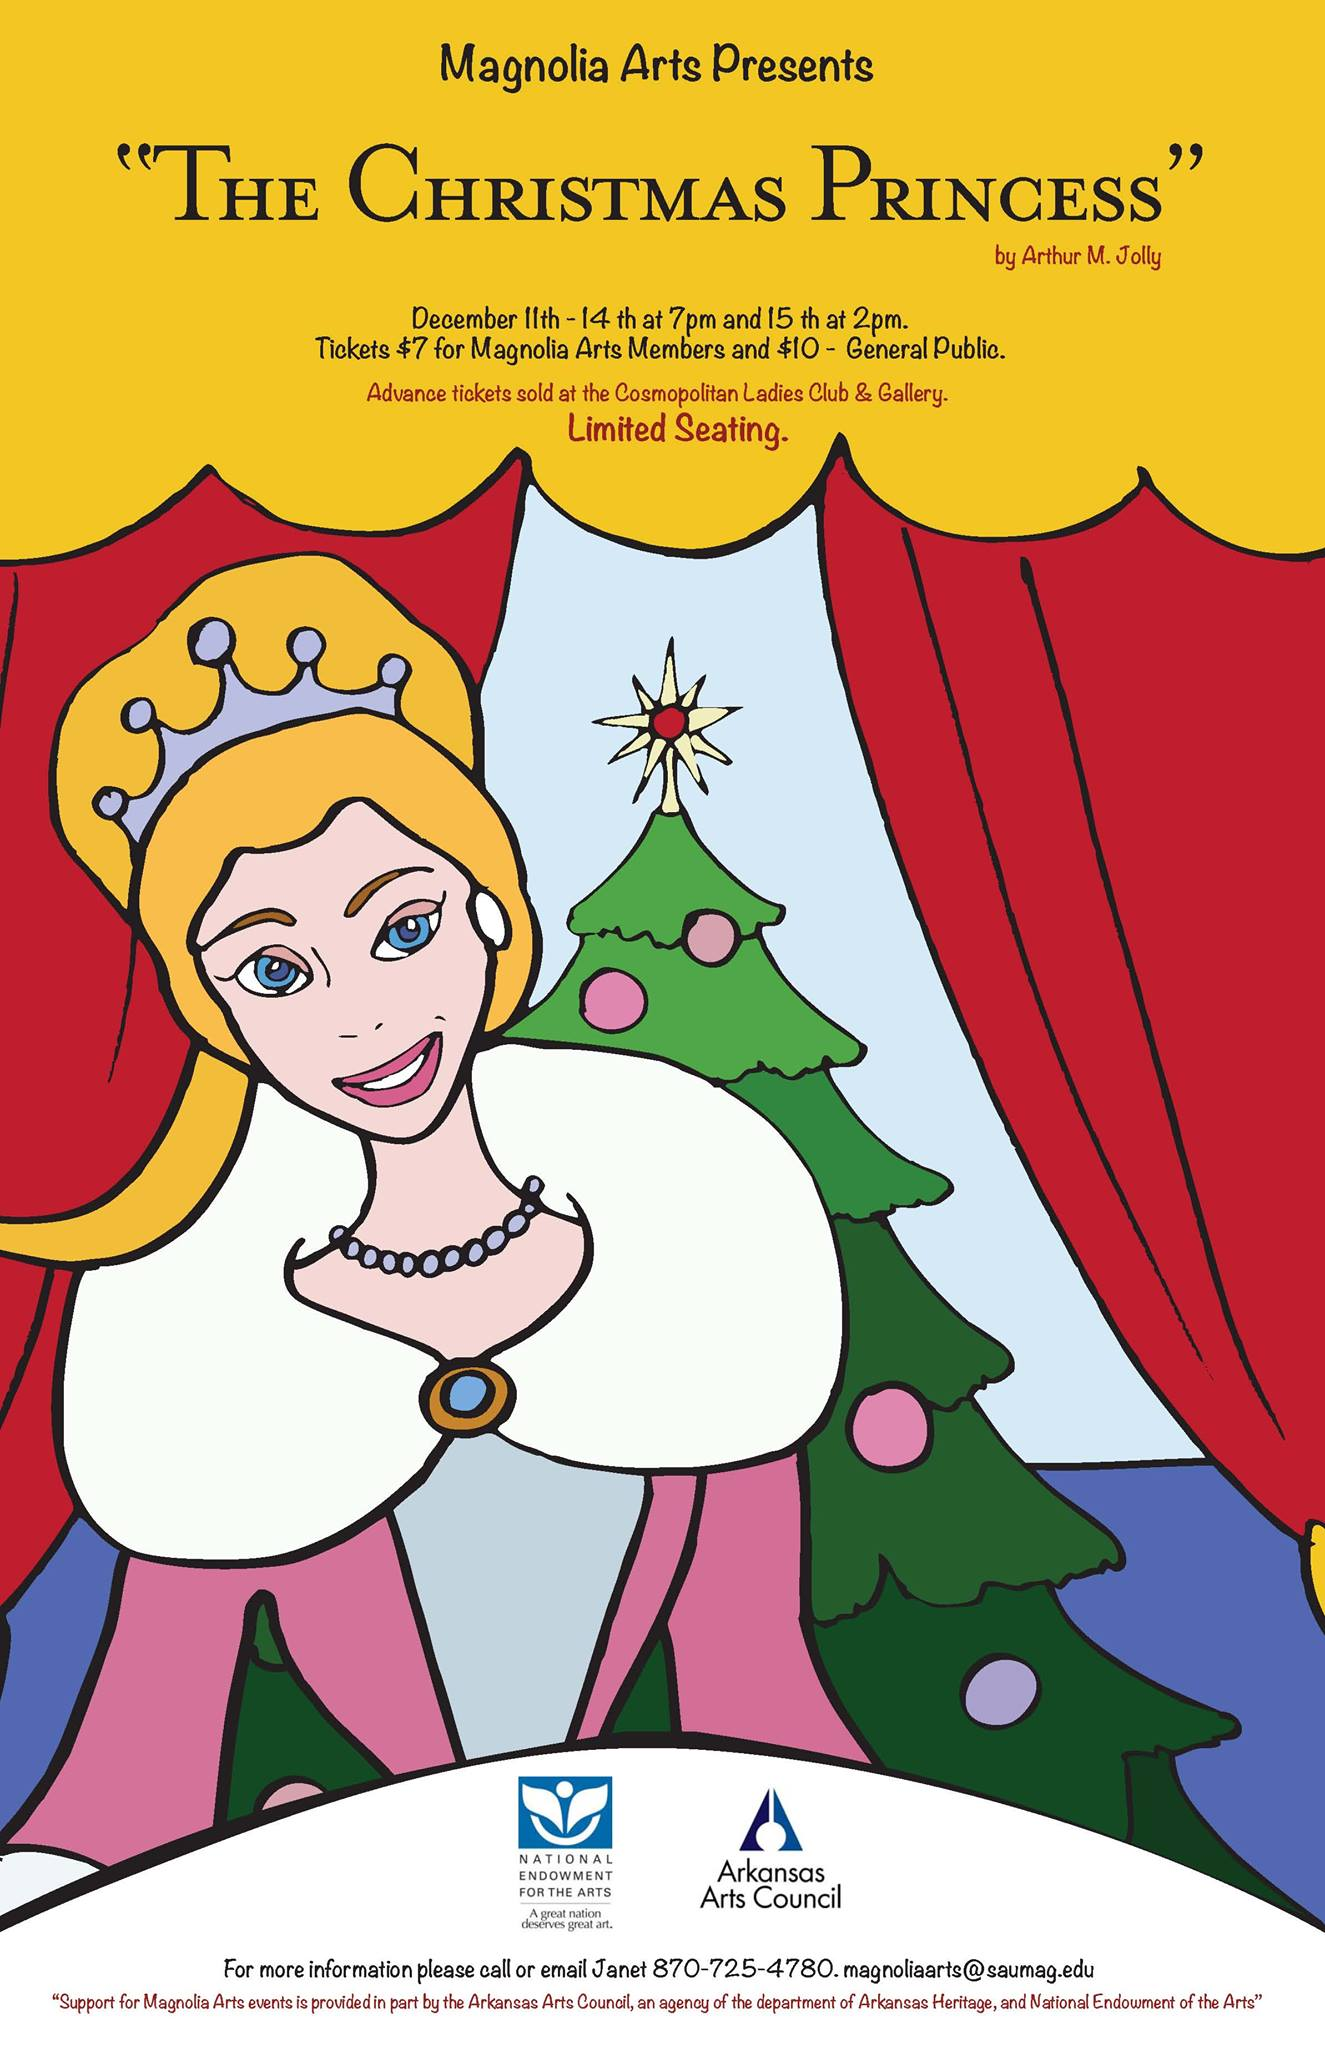 The Christmas Princess